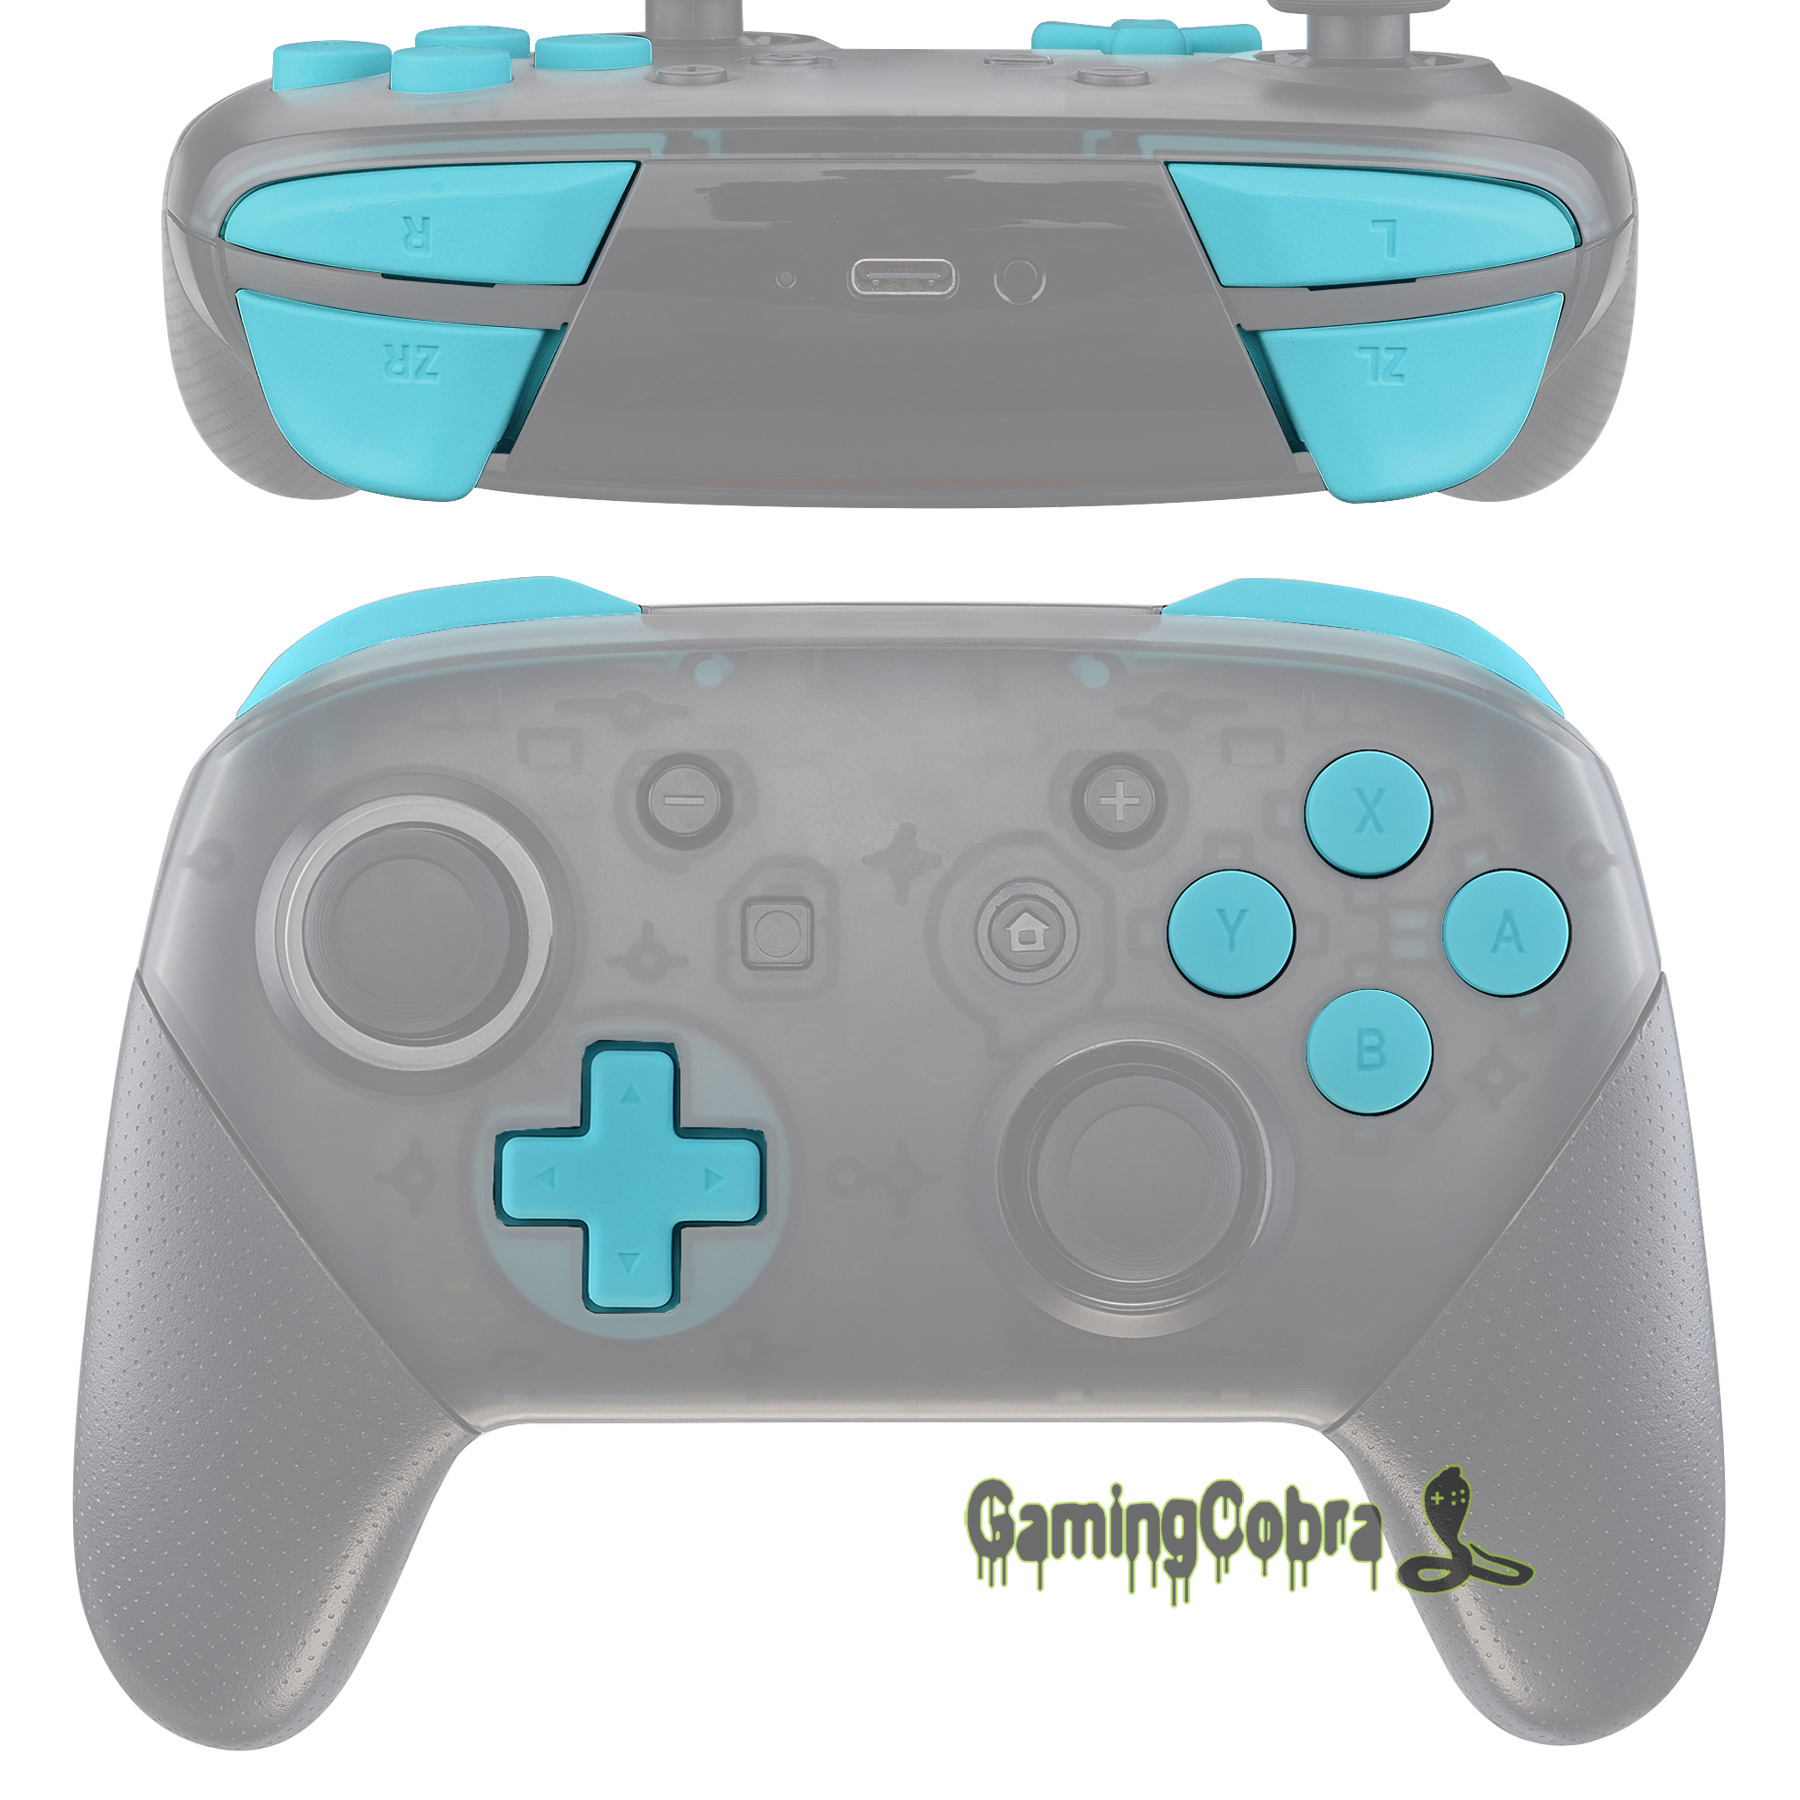 Soft Touch Heaven Blue Repair ABXY D-pad ZR ZL L R Keys Replacement Full Set Buttons W/ Tools For Nintendo Switch Pro Controller